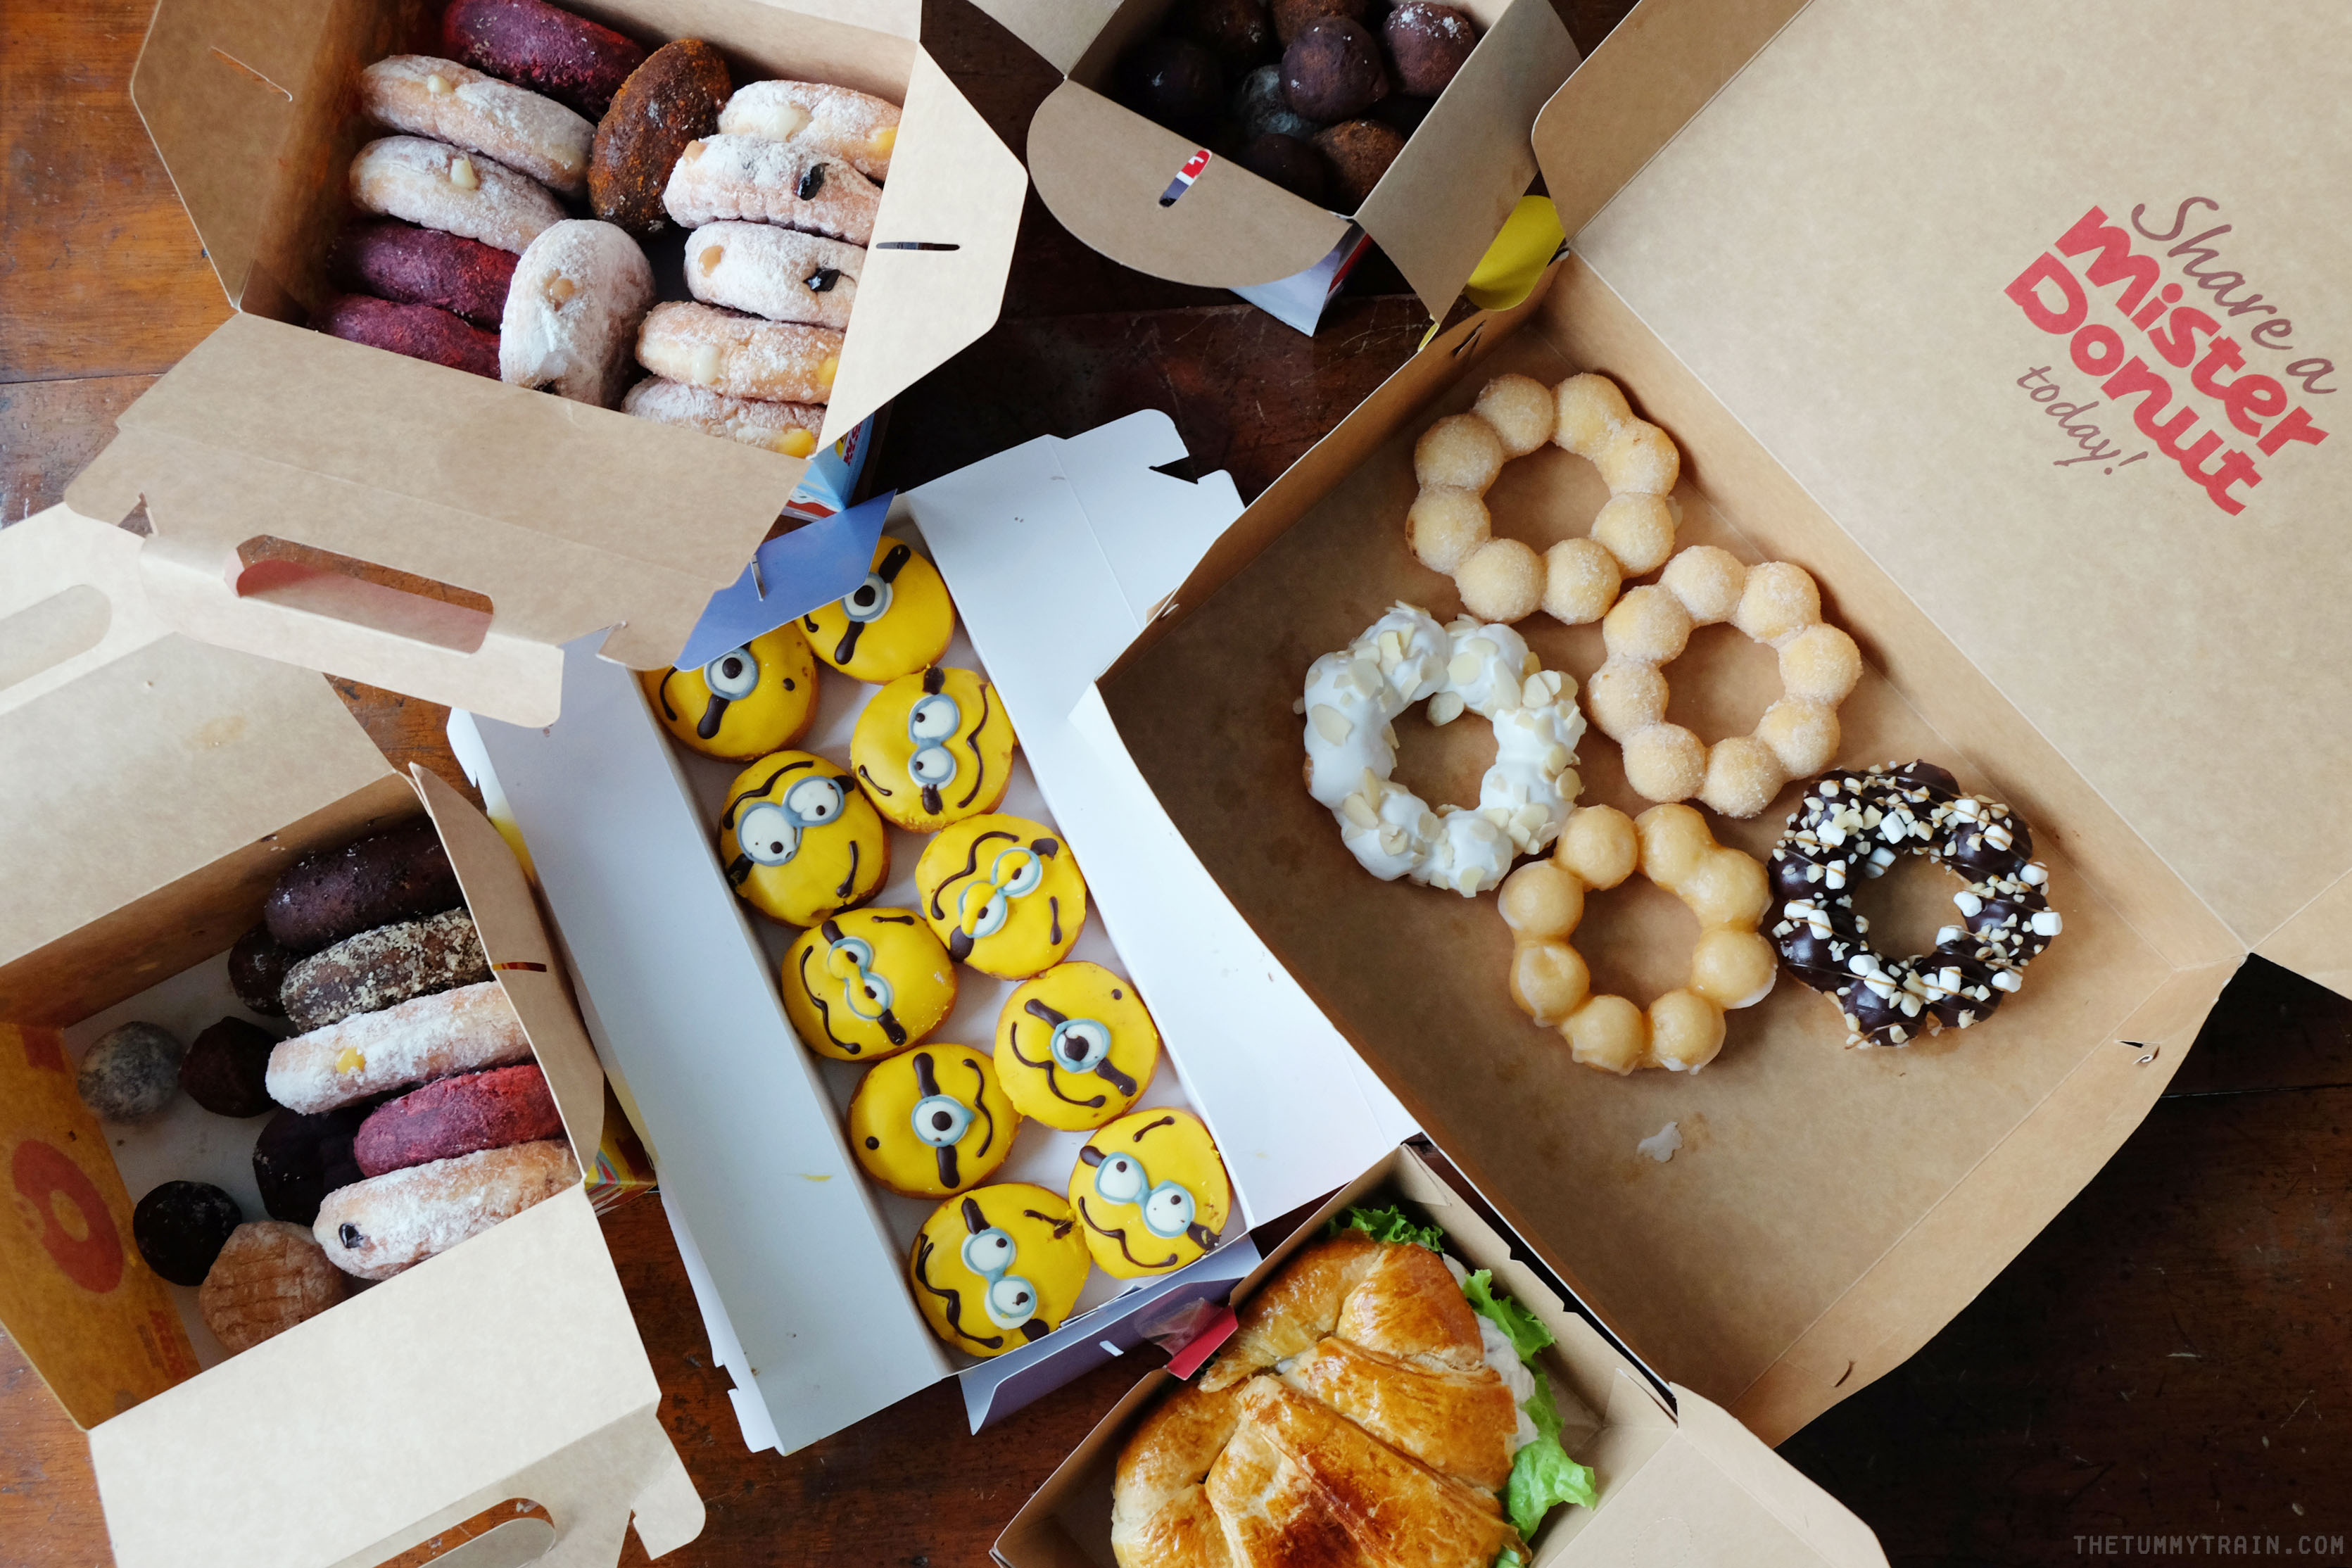 Mister Donut 1 - Minions invade Mister Donut + An Overload of Donuts Giveaway!